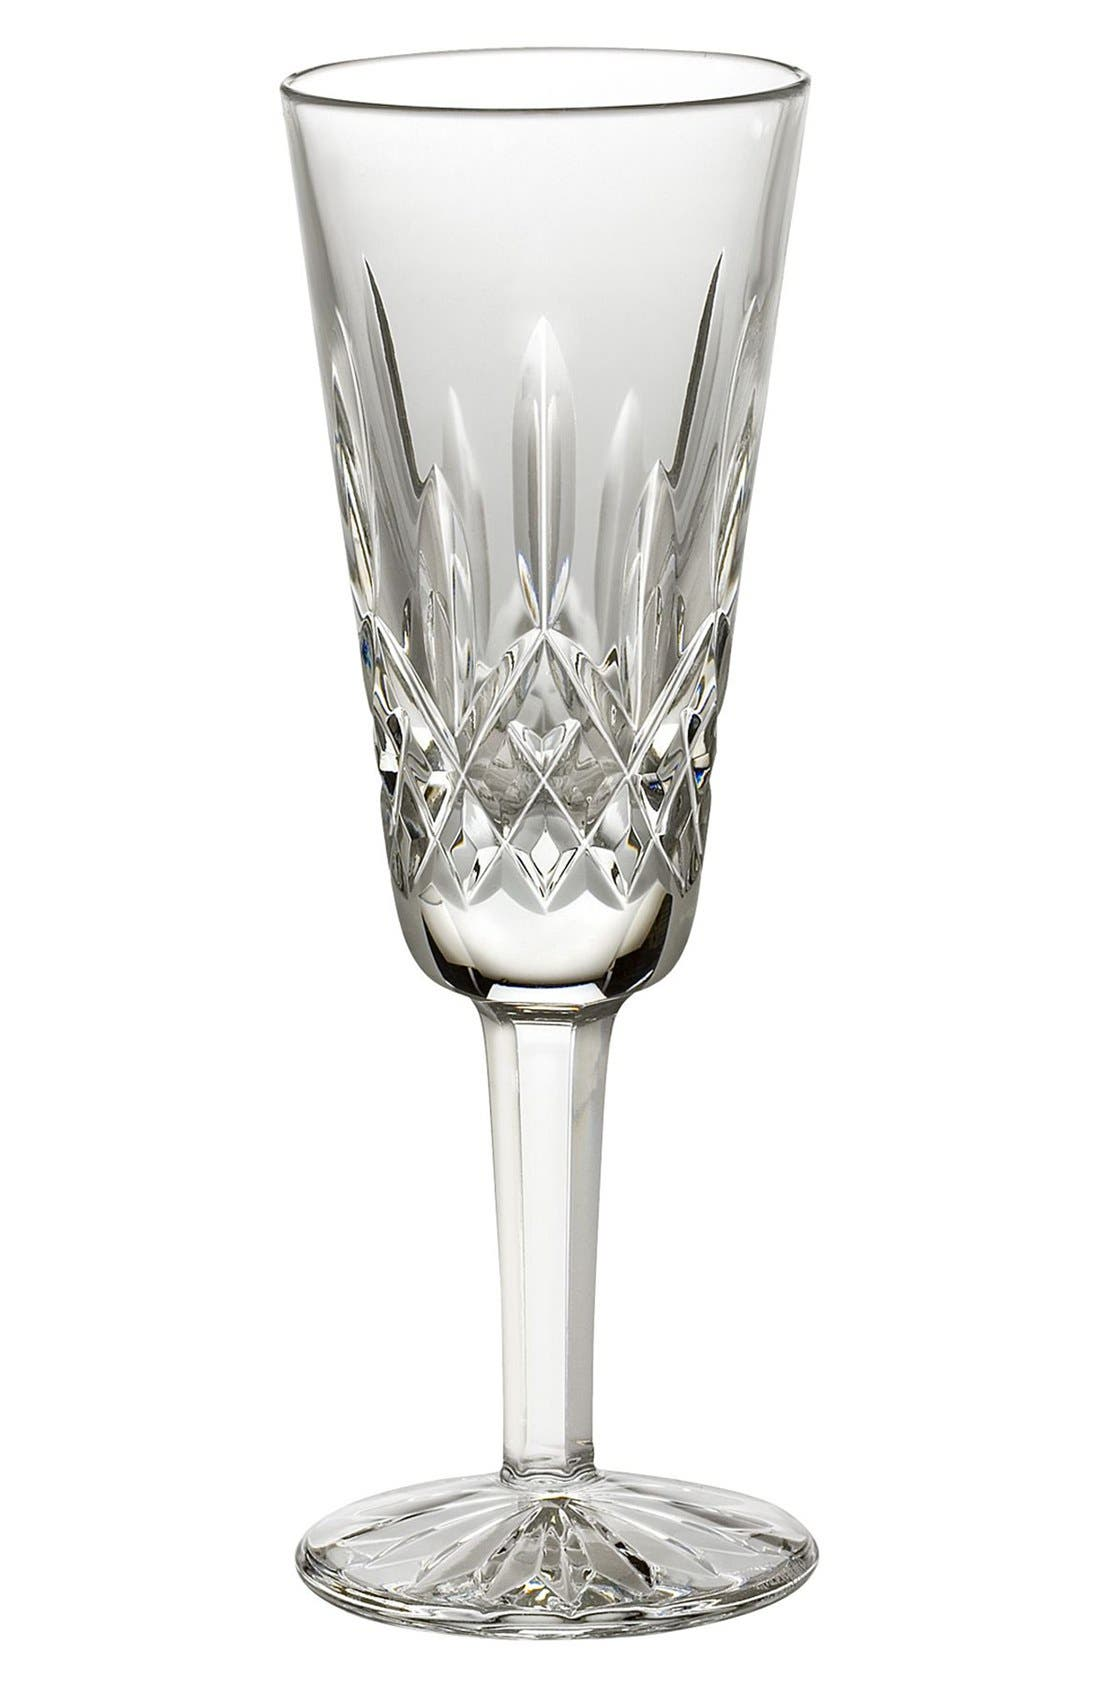 Main Image - Waterford 'Lismore' Lead Crystal Champagne Flute